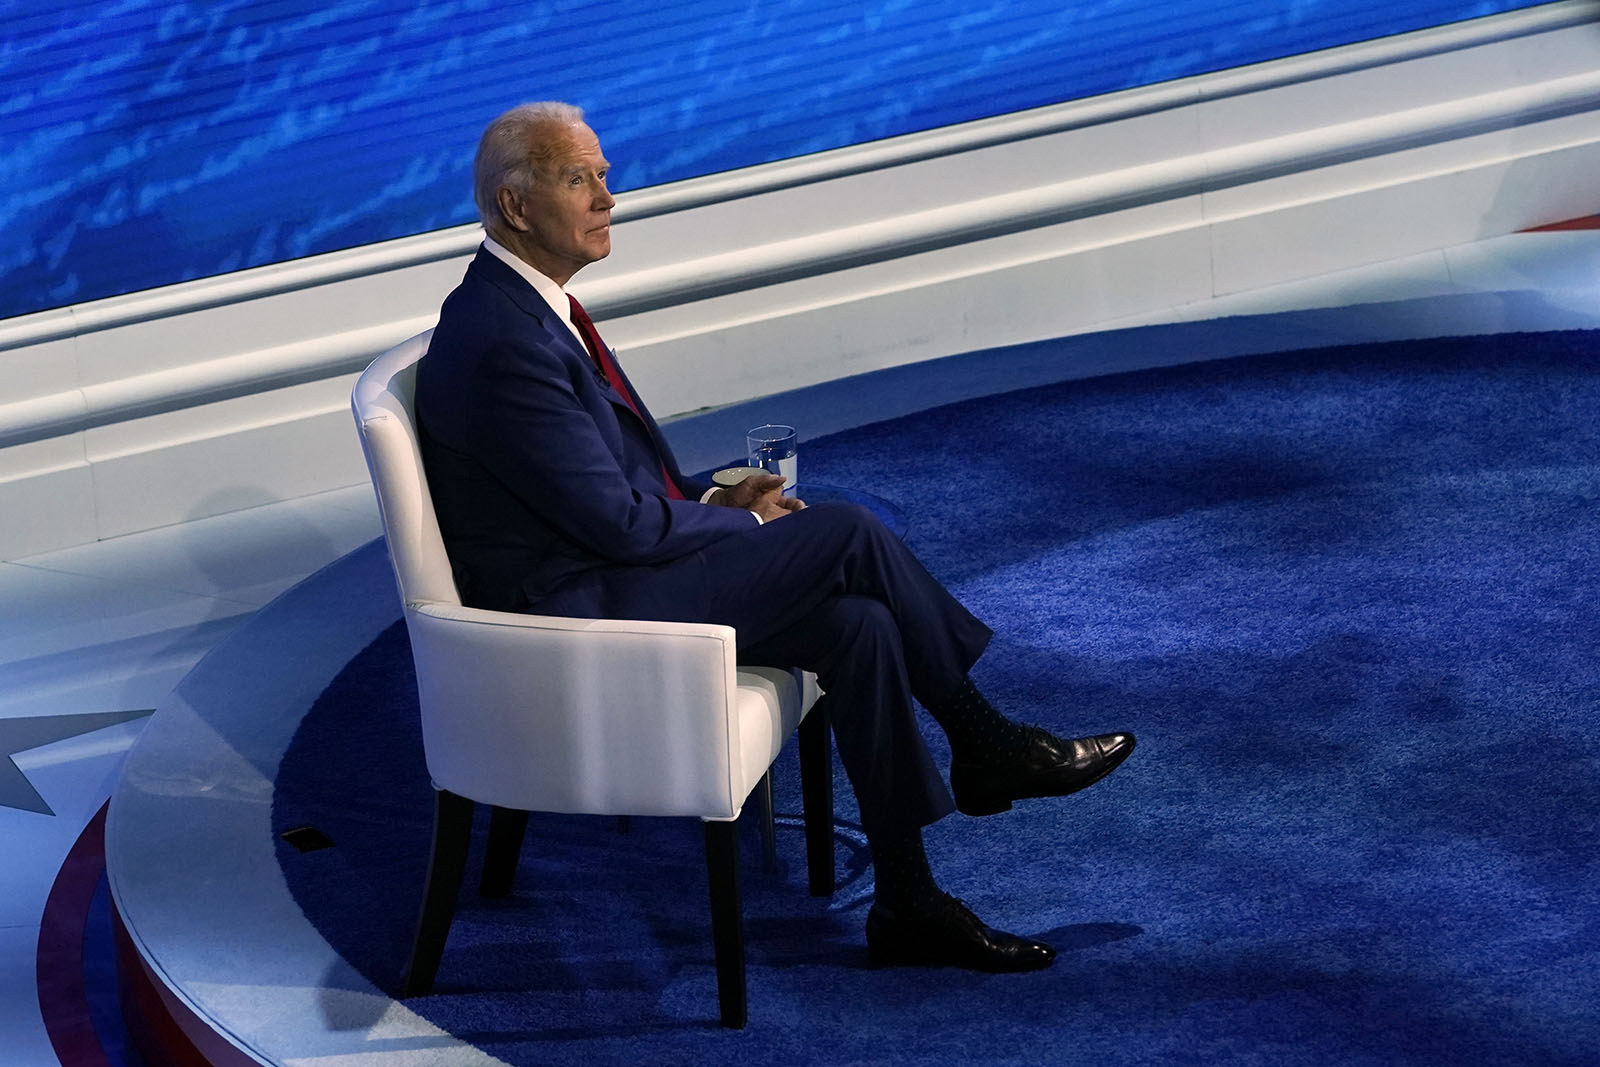 Democratic presidential candidate former Vice President Joe Biden looks up as he participates in a town hall with moderator ABC News anchor George Stephanopoulos at the National Constitution Center in Philadelphia on Thursday.